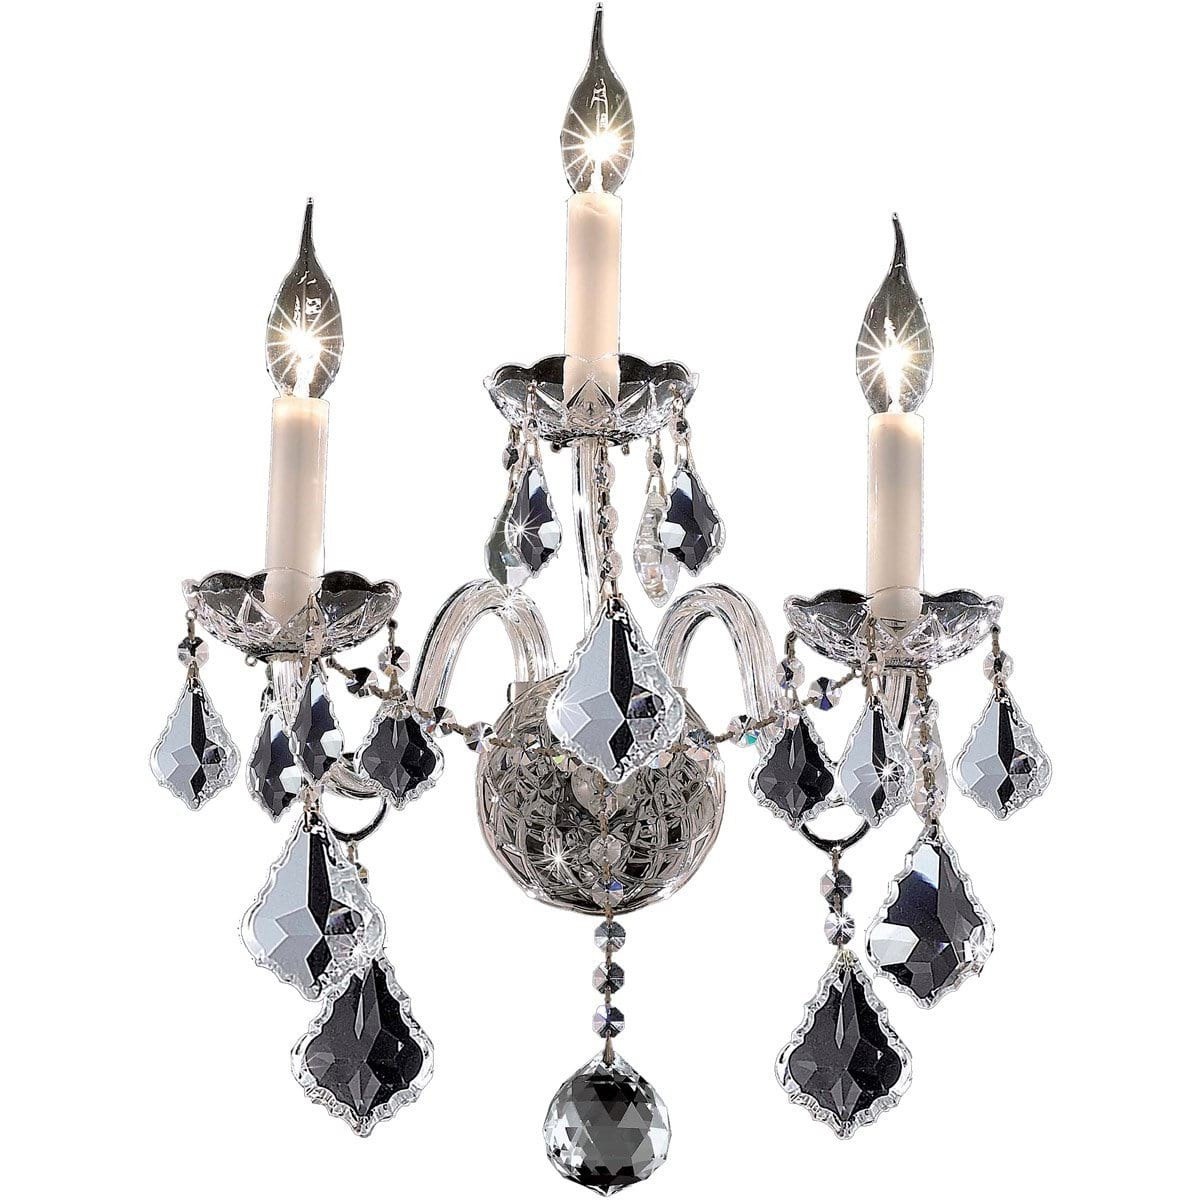 "Alexandria 13"" Crystal Wall Sconce with 3 Lights - Chrome Finish and Royal Cut Crystal"